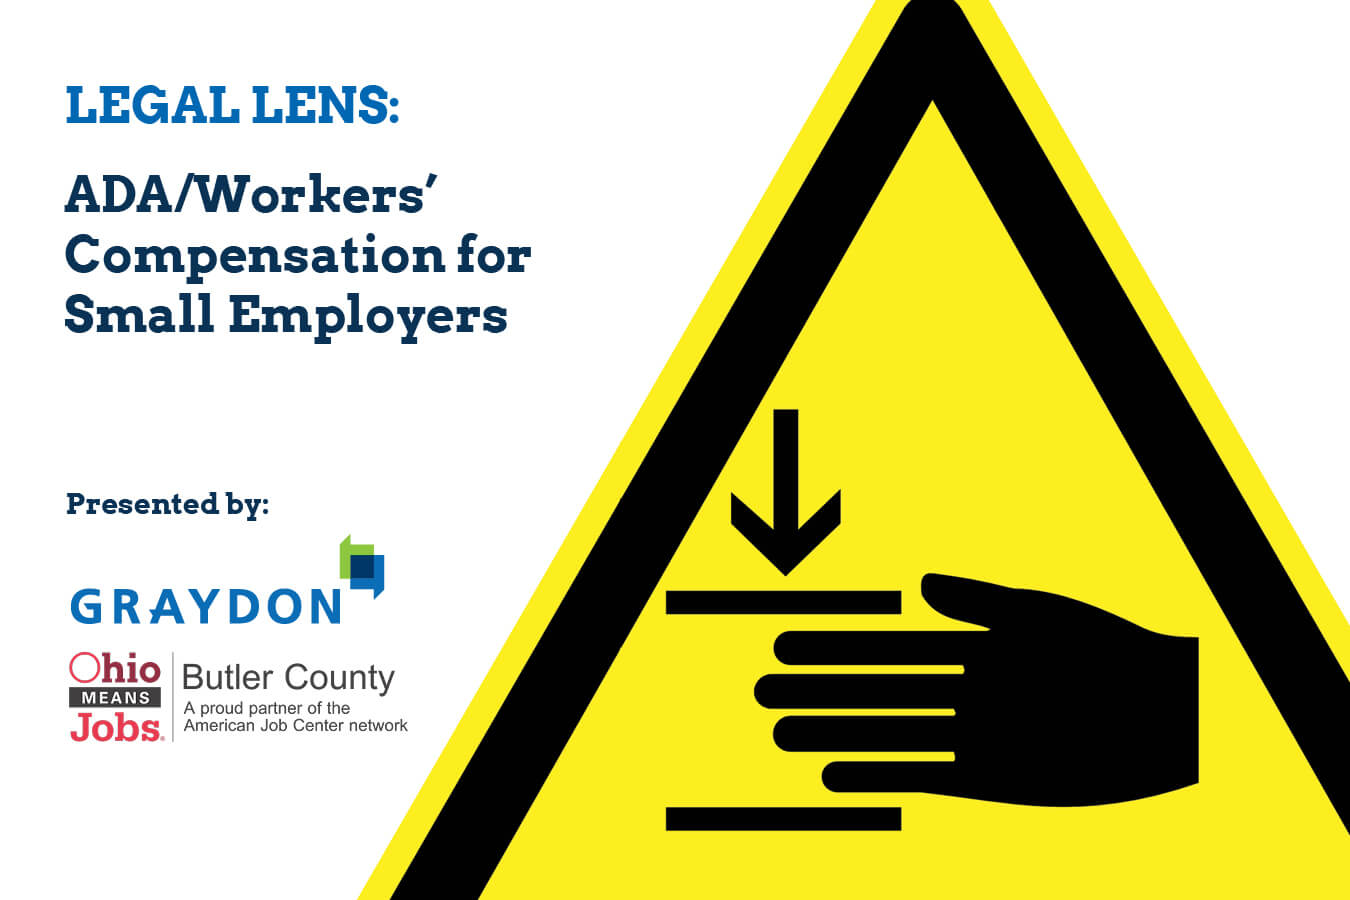 ADA and Workers' Compensation for Small Employers